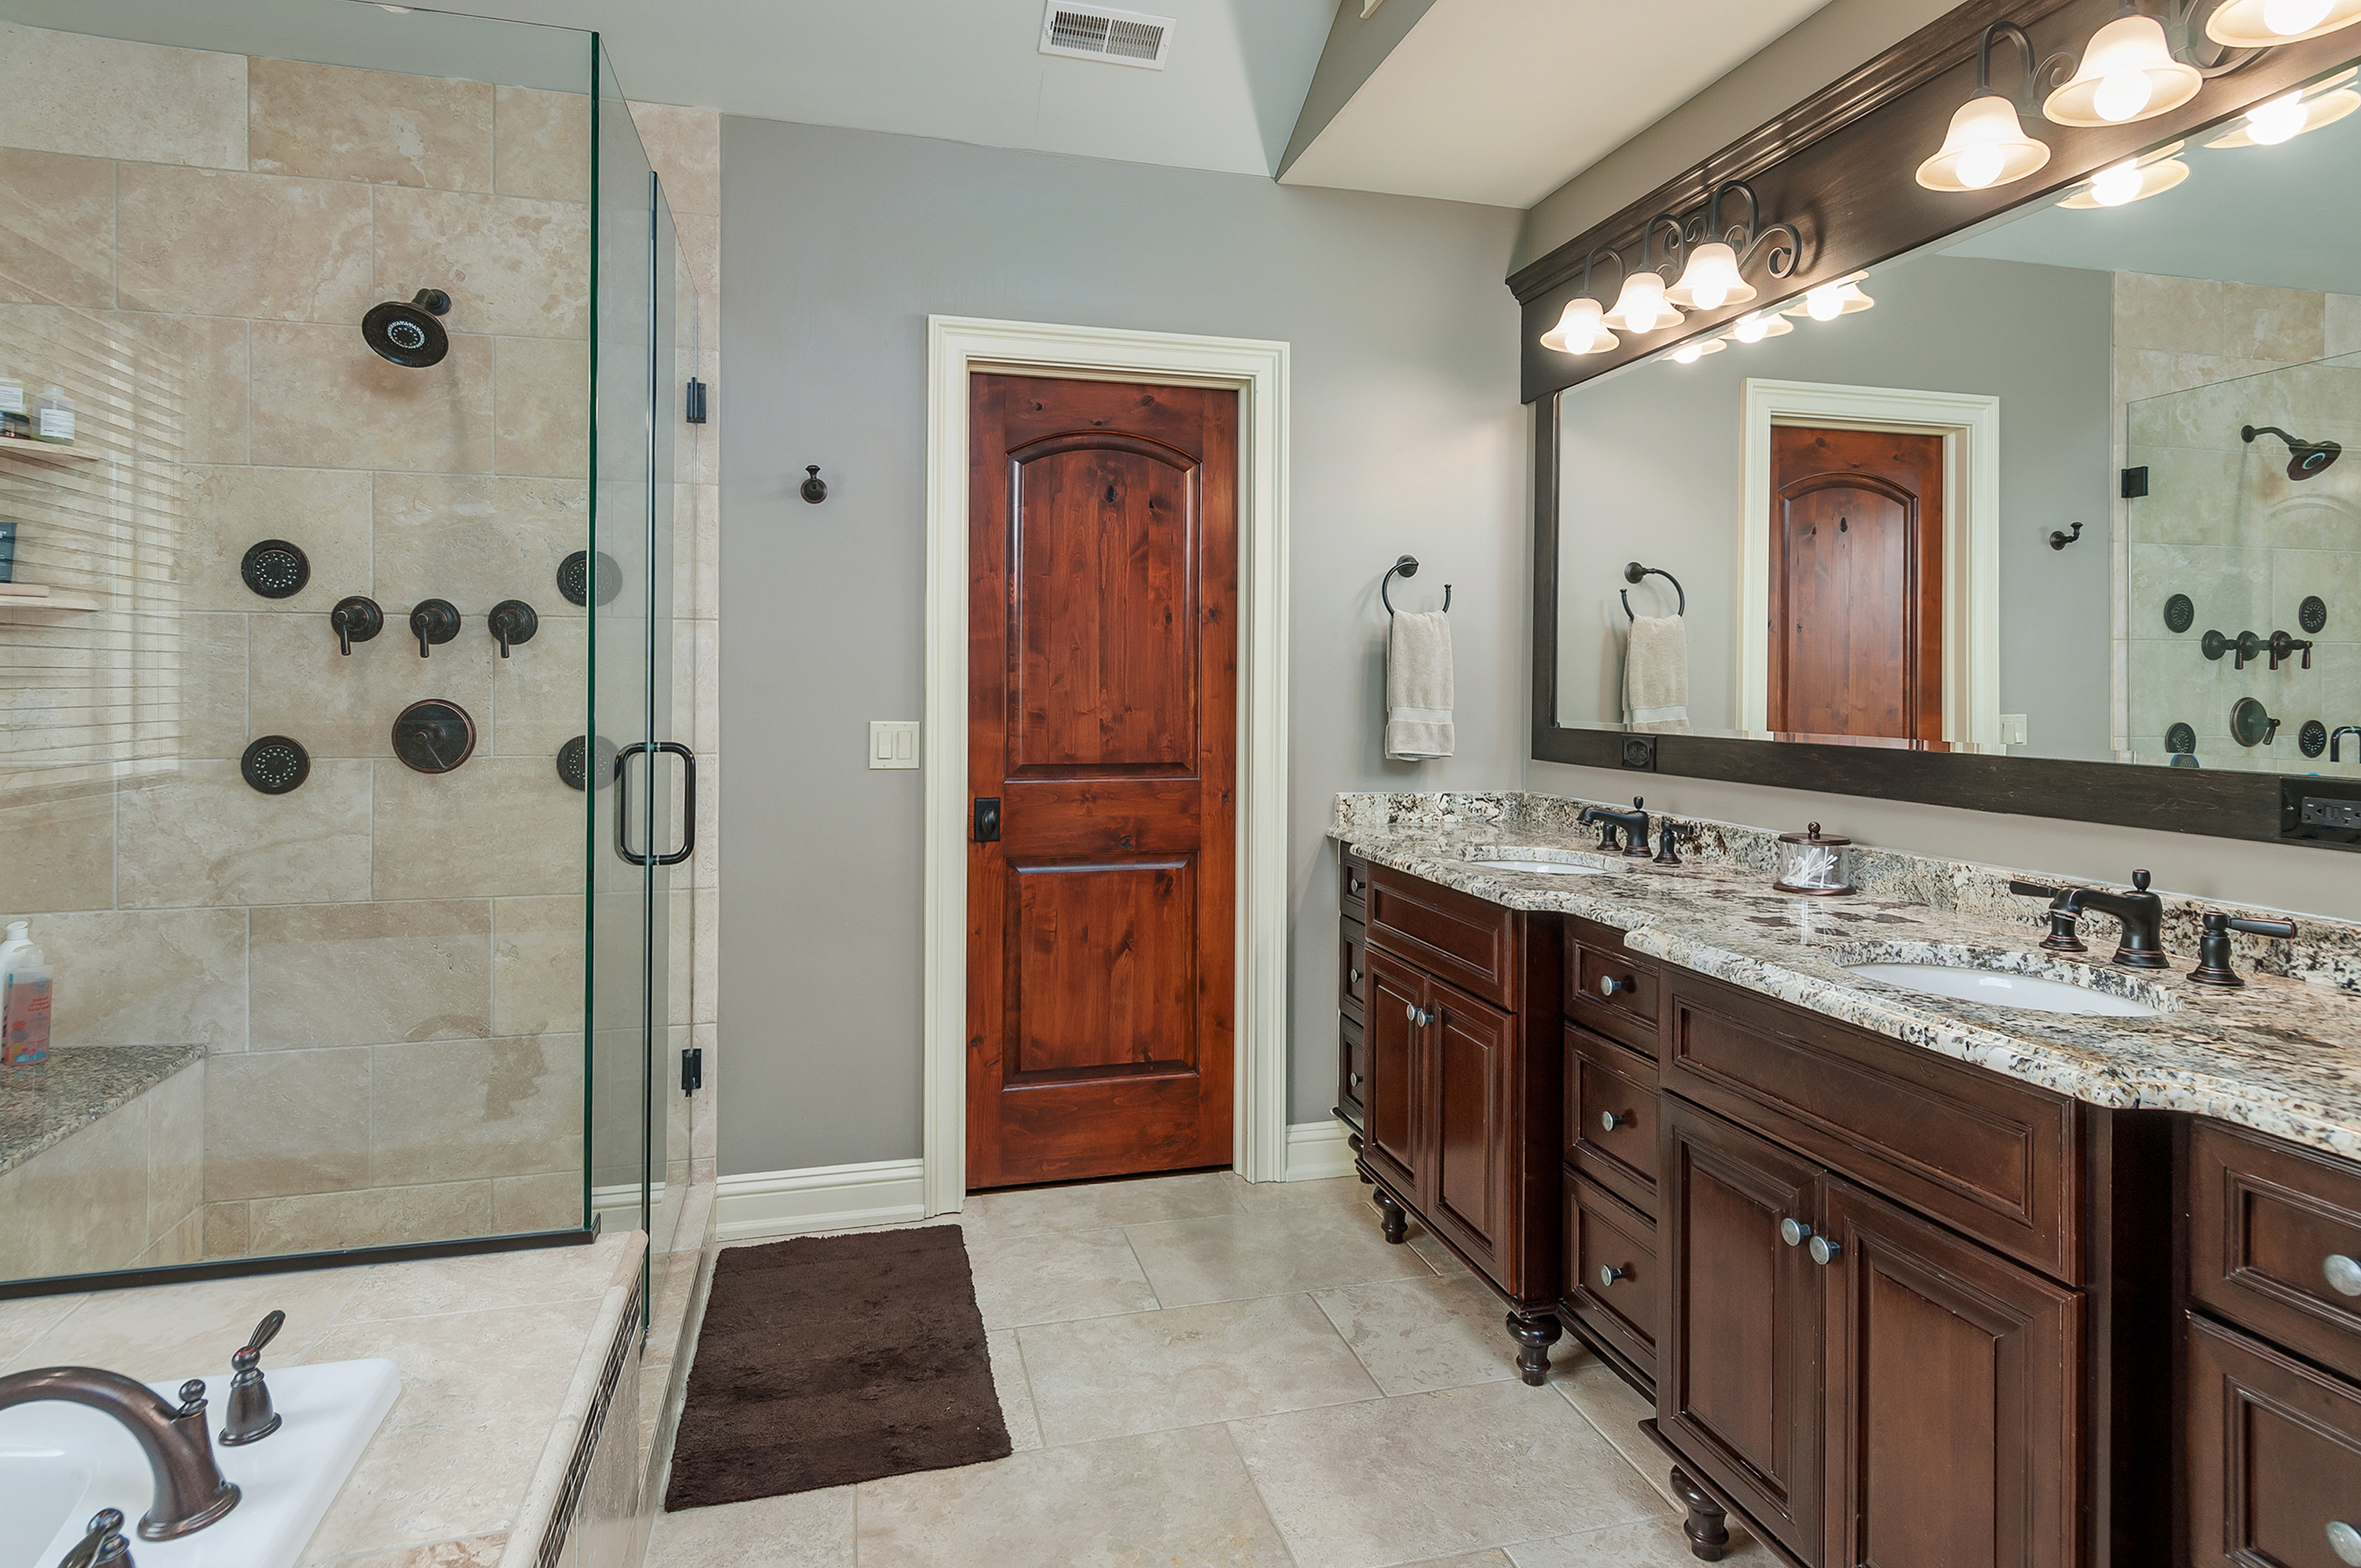 Potpourri of New Images. A dream master bathroom in Naperville, IL